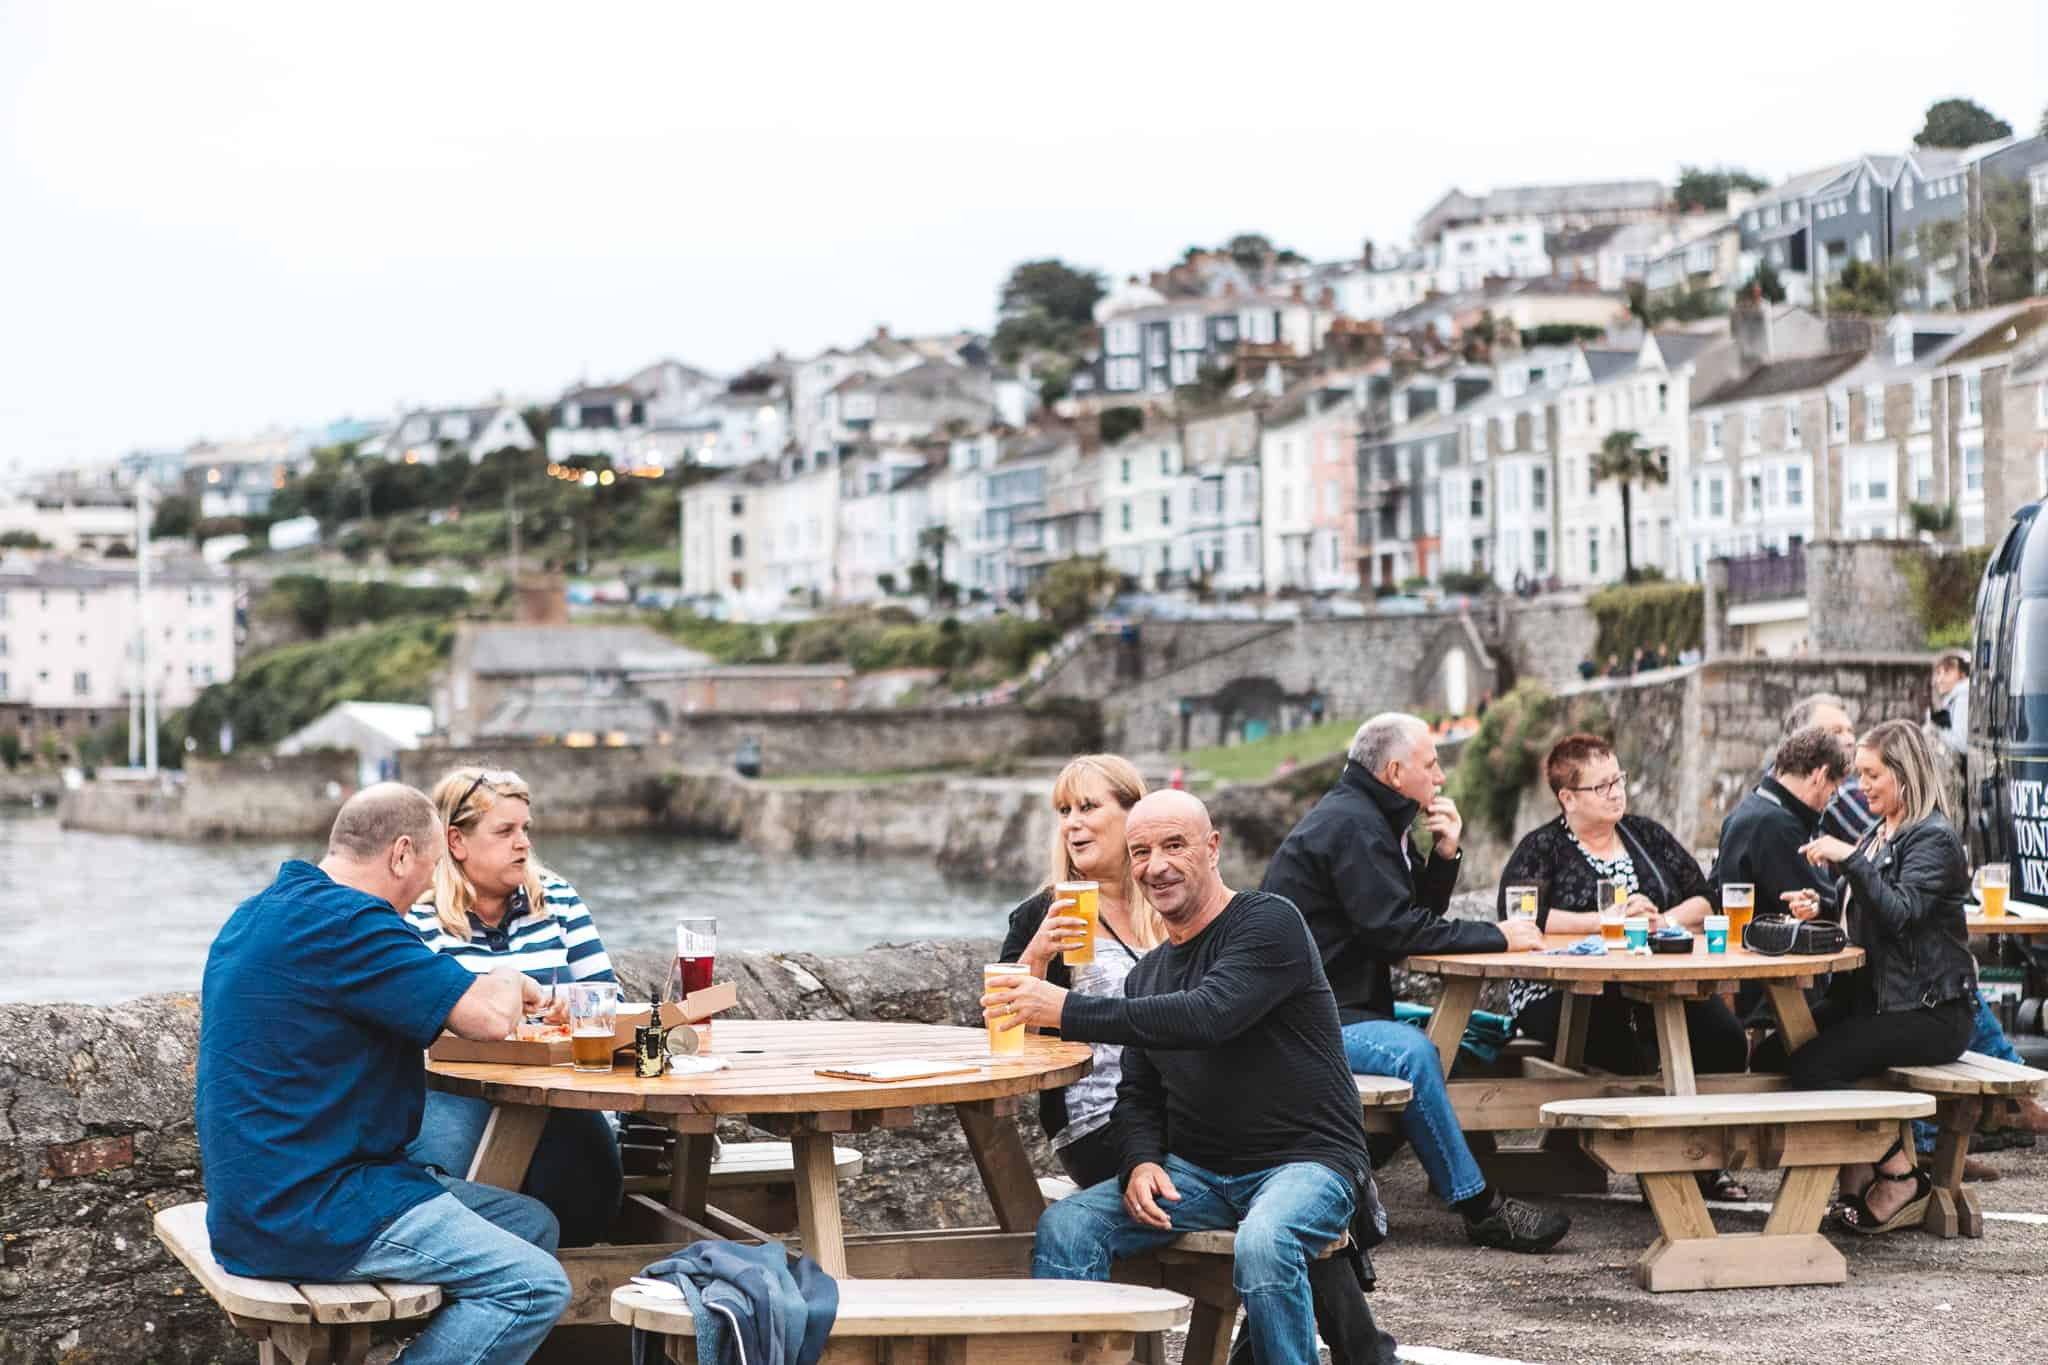 falmouth-week-at-the-working-boat-pub-live-music-events-falmouth-cornwall (26 of 114)